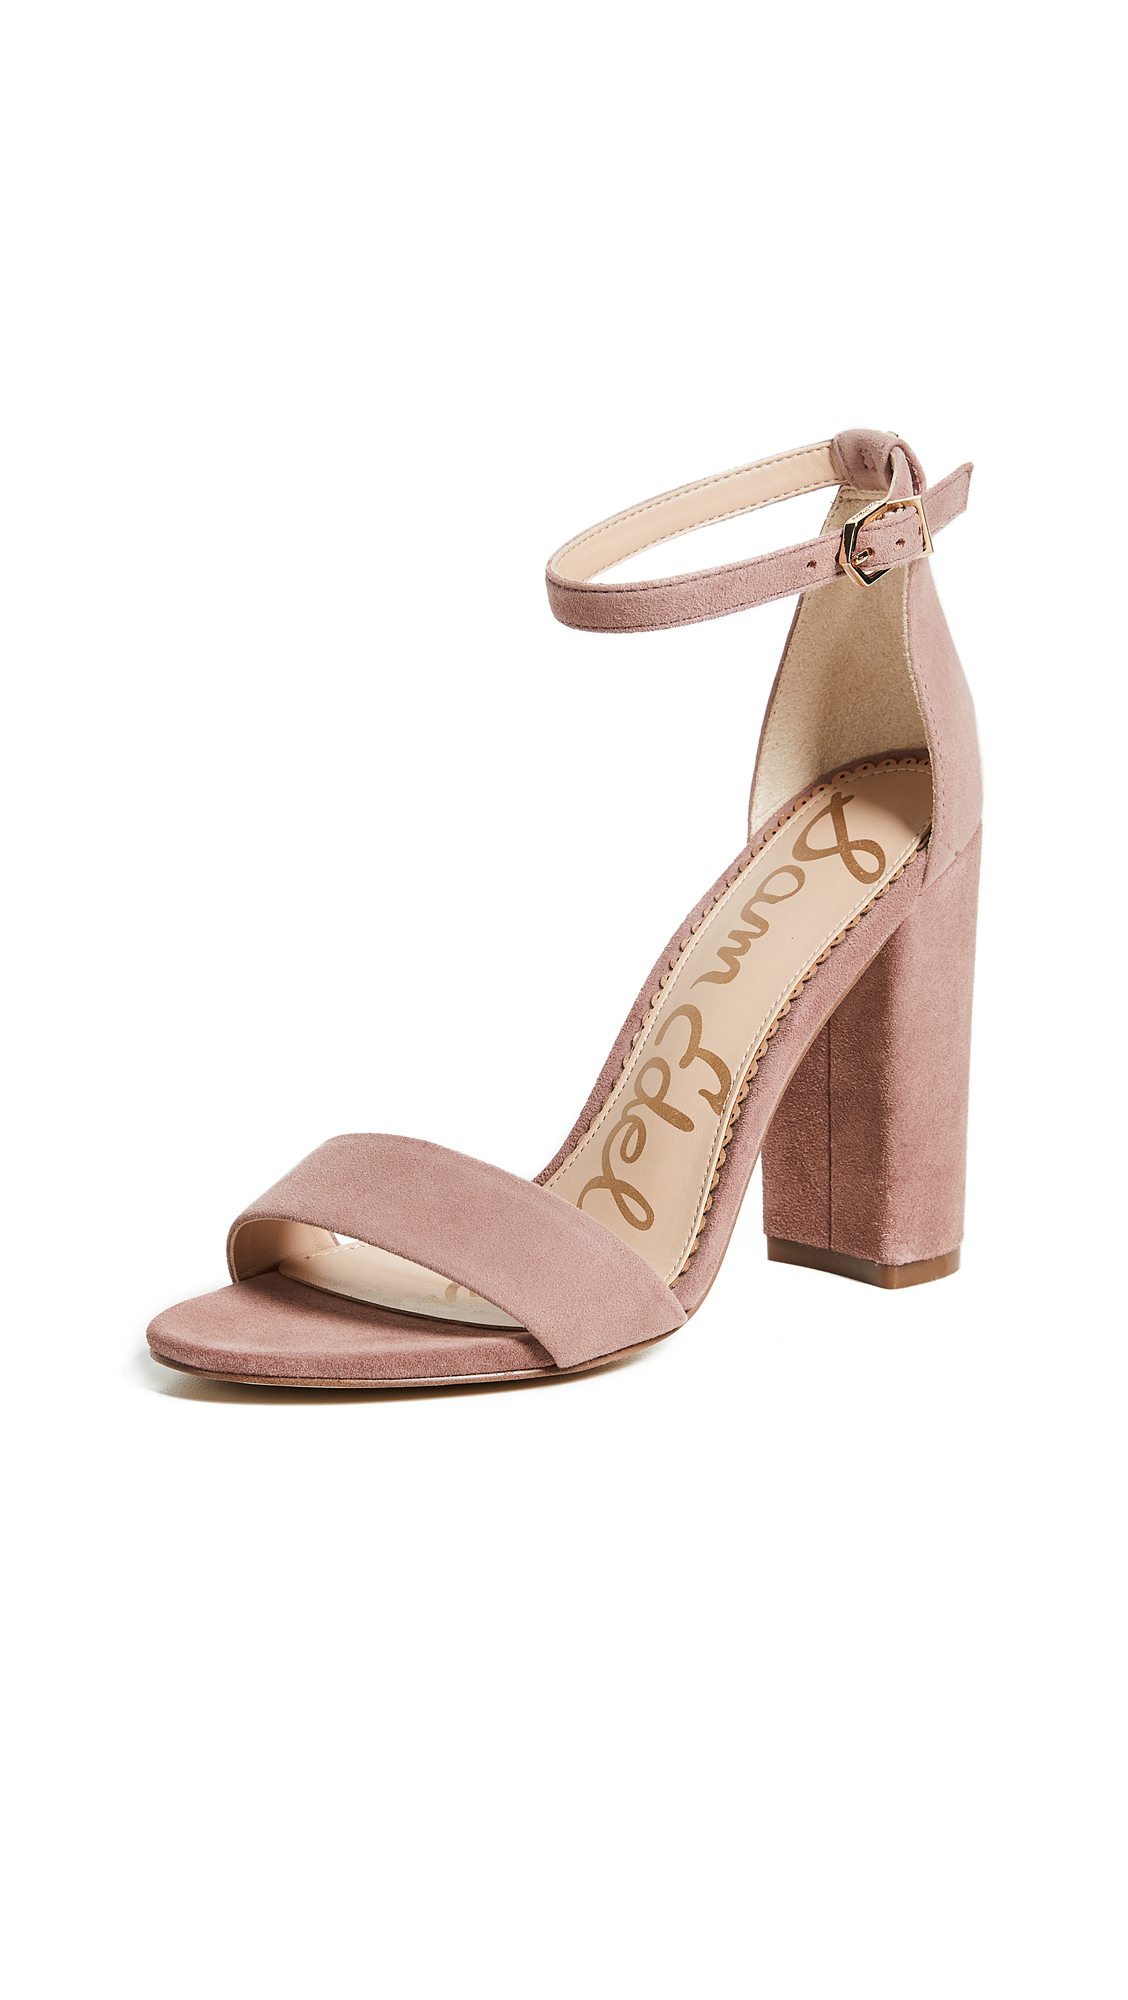 Sam Edelman Yaro Sandals - Dusty Rose